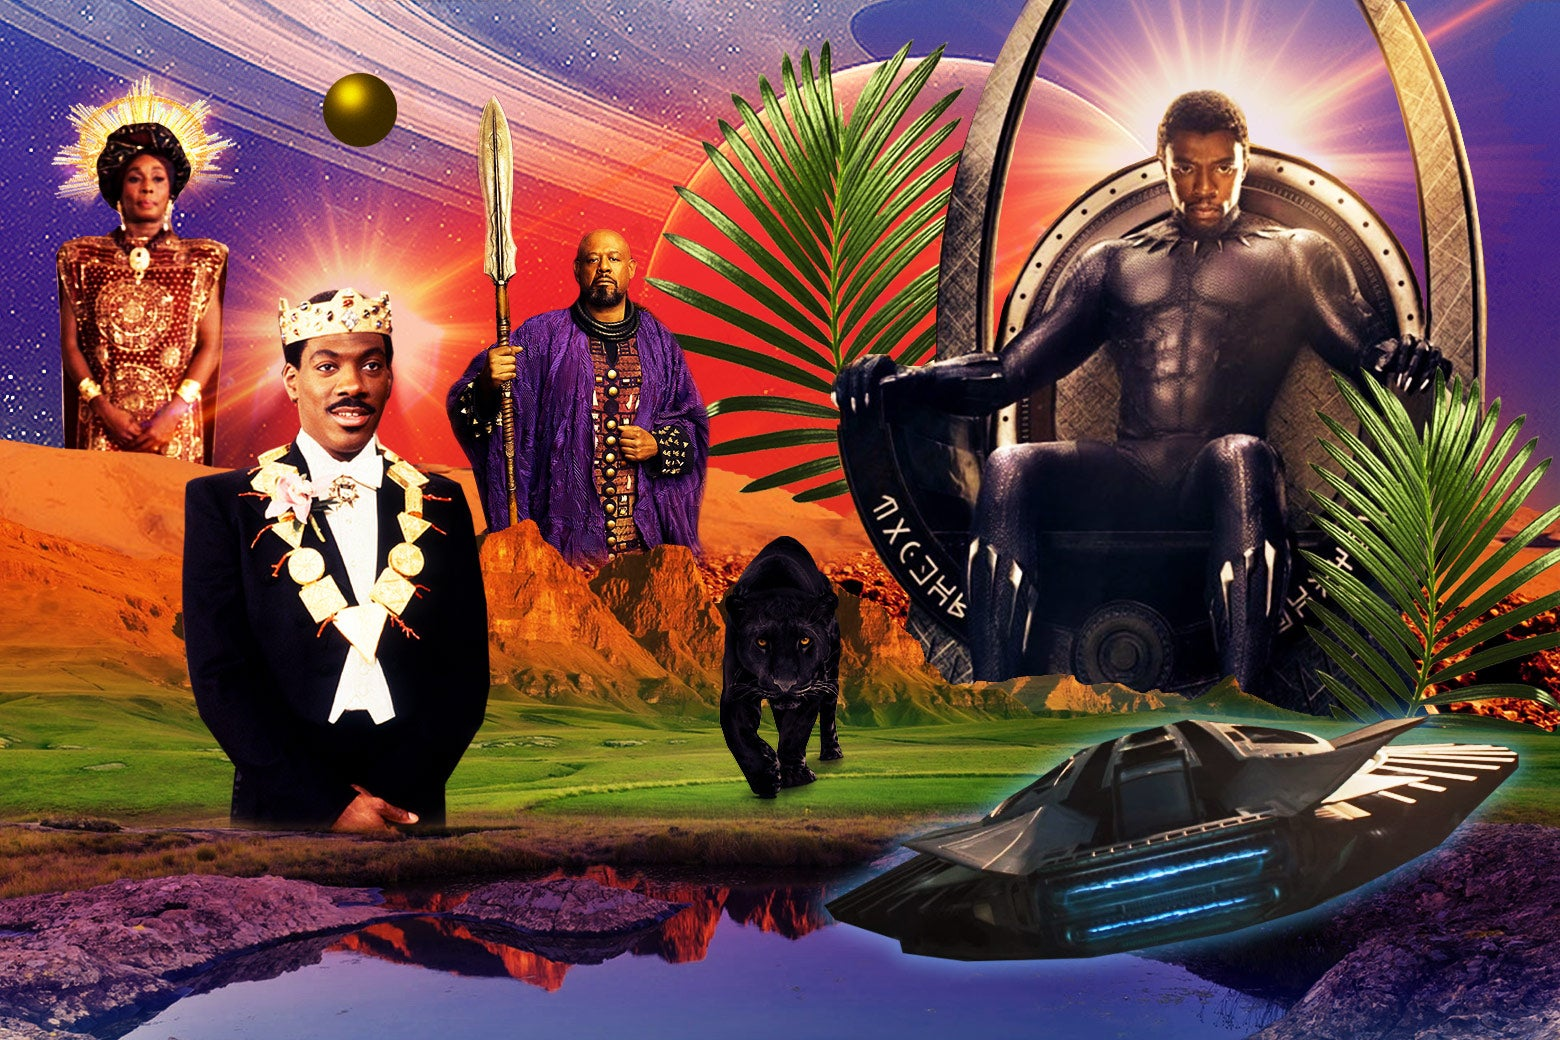 An African landscape depicting cast members of both Black Panther and Coming to America.